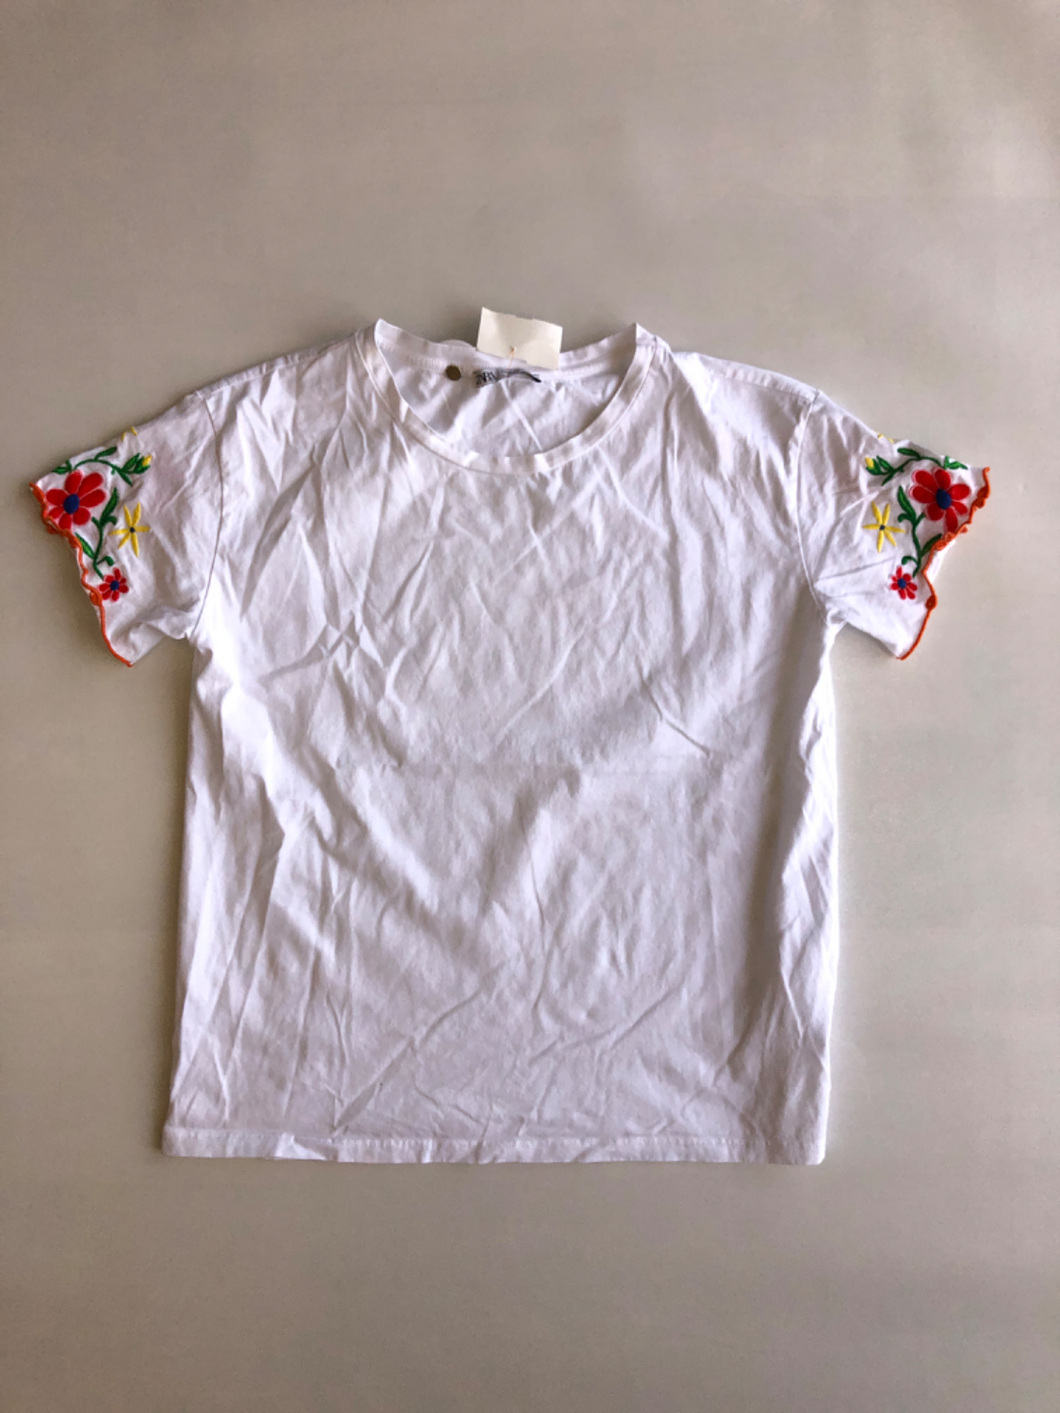 Zara T-Shirt Size Medium